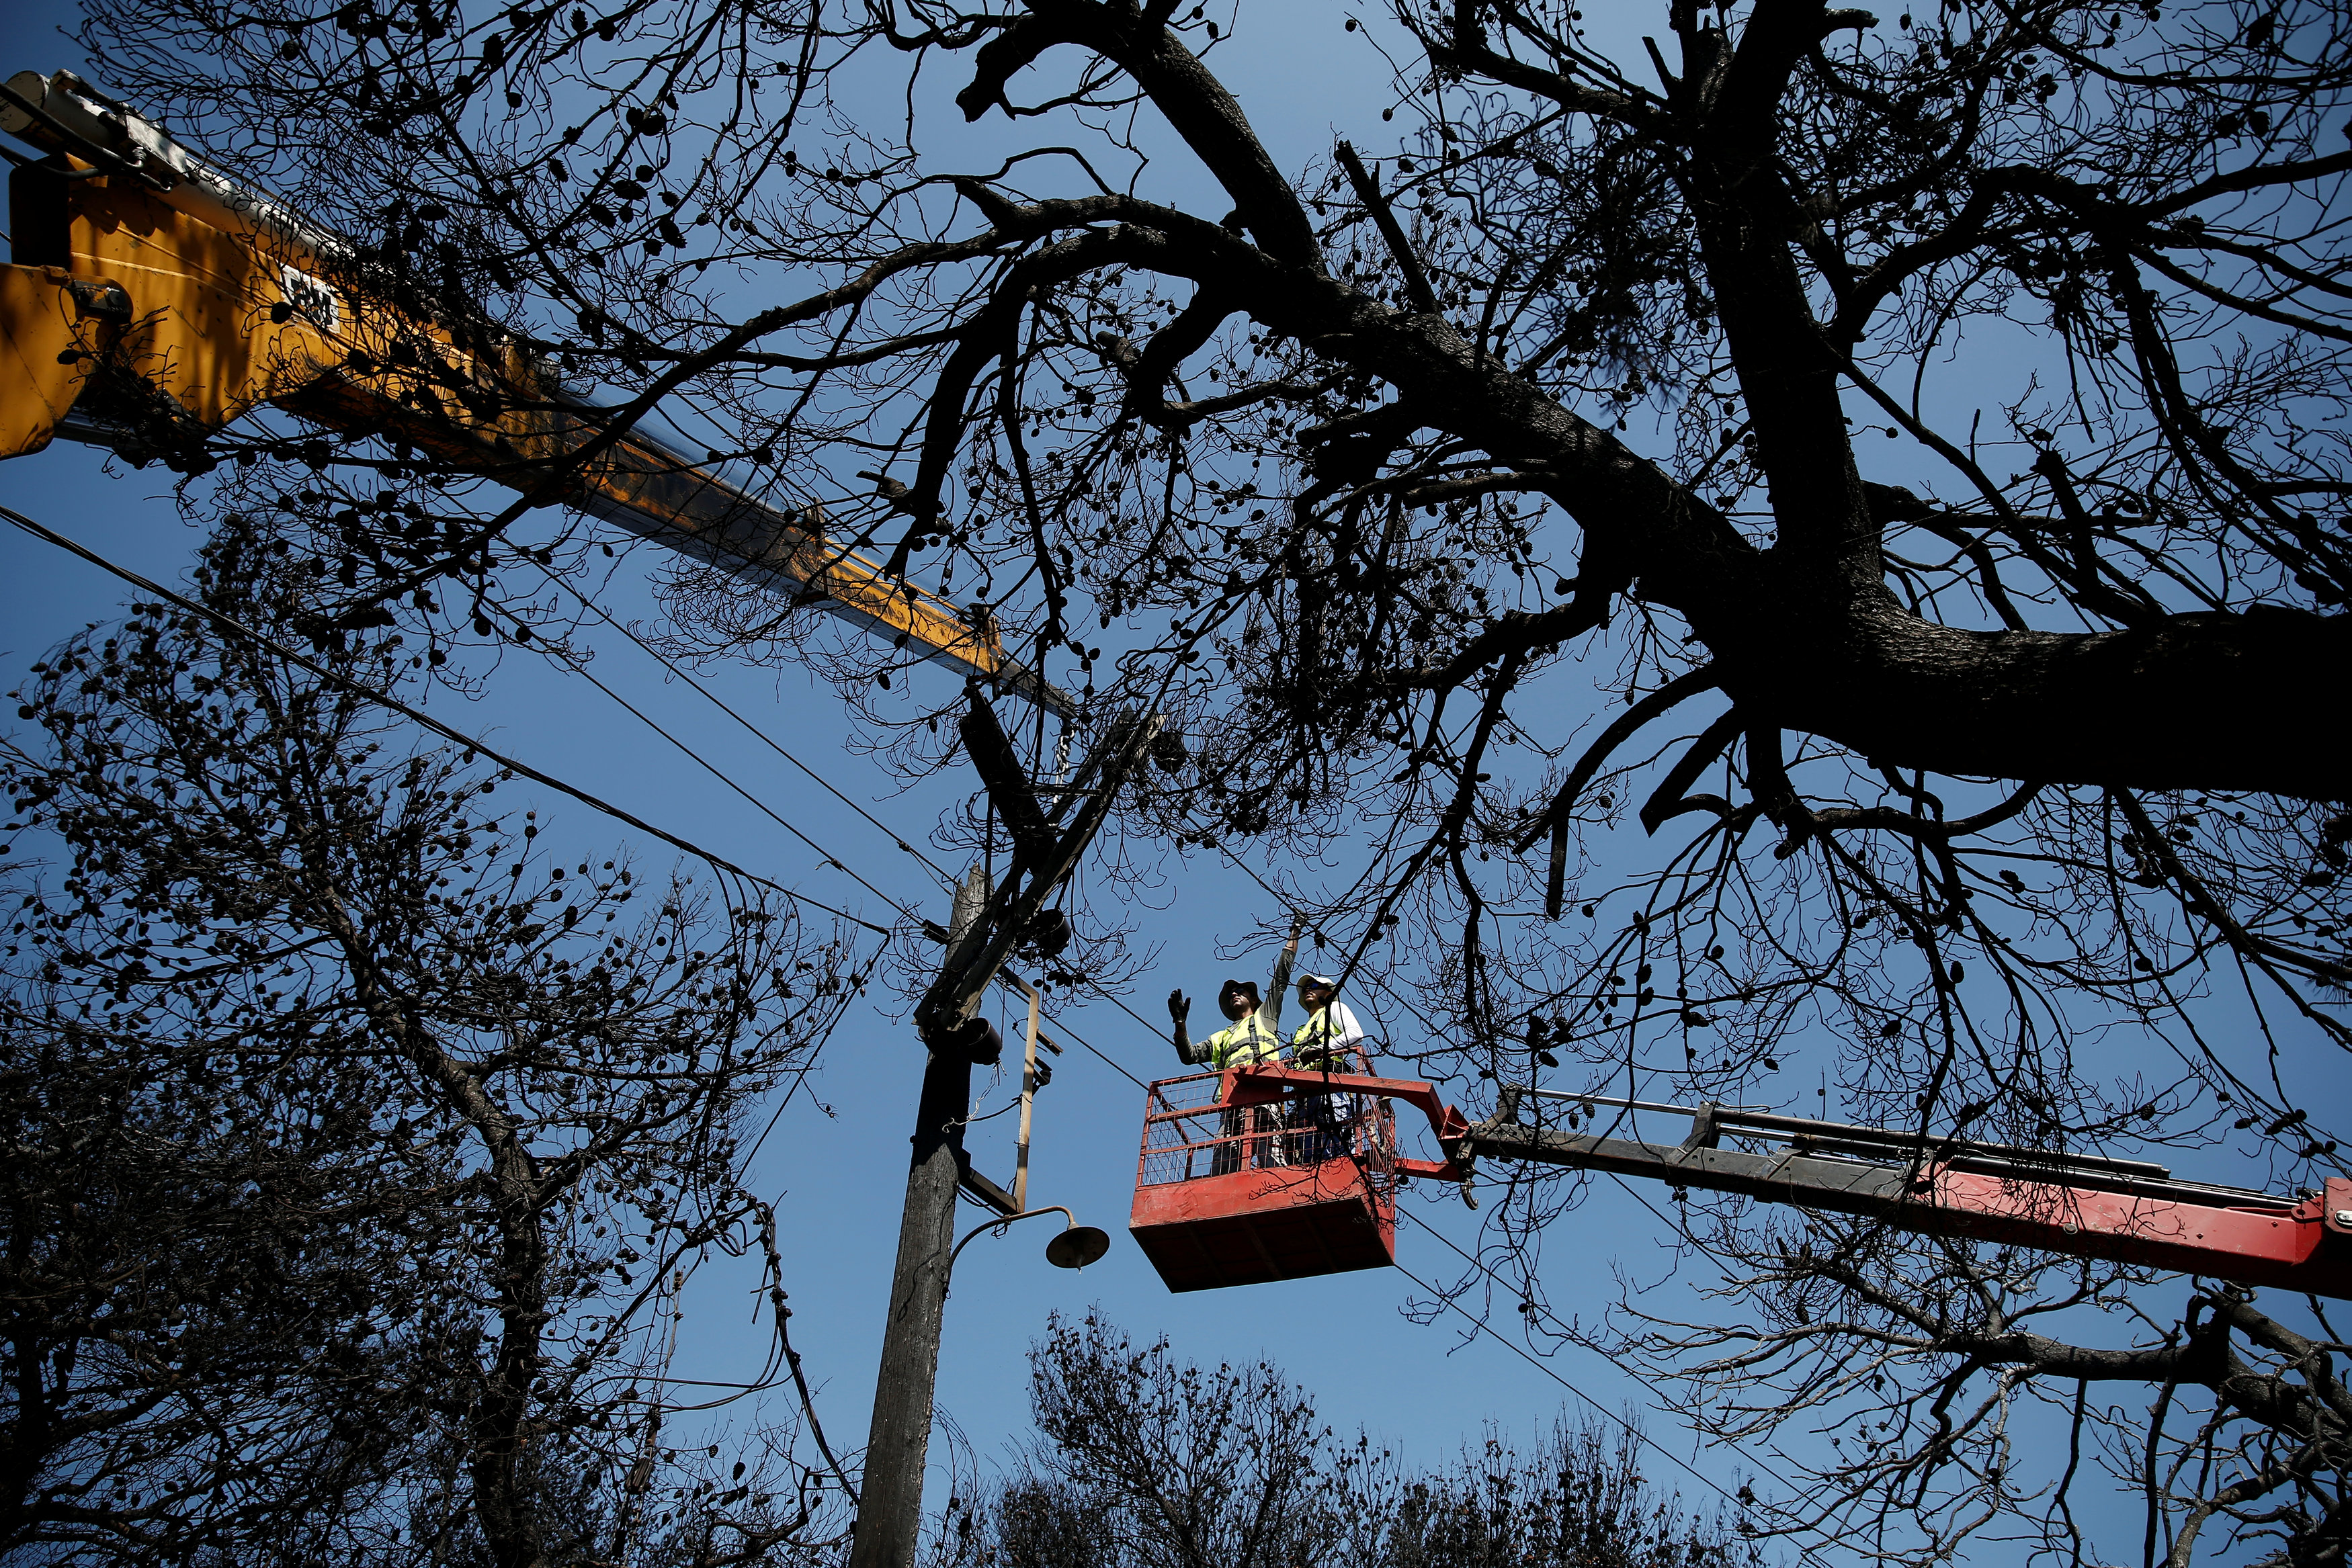 Workers of the Public Power Corporation (PPC) replace electricity wires, following a wildfire in the village of Mati, near Athens